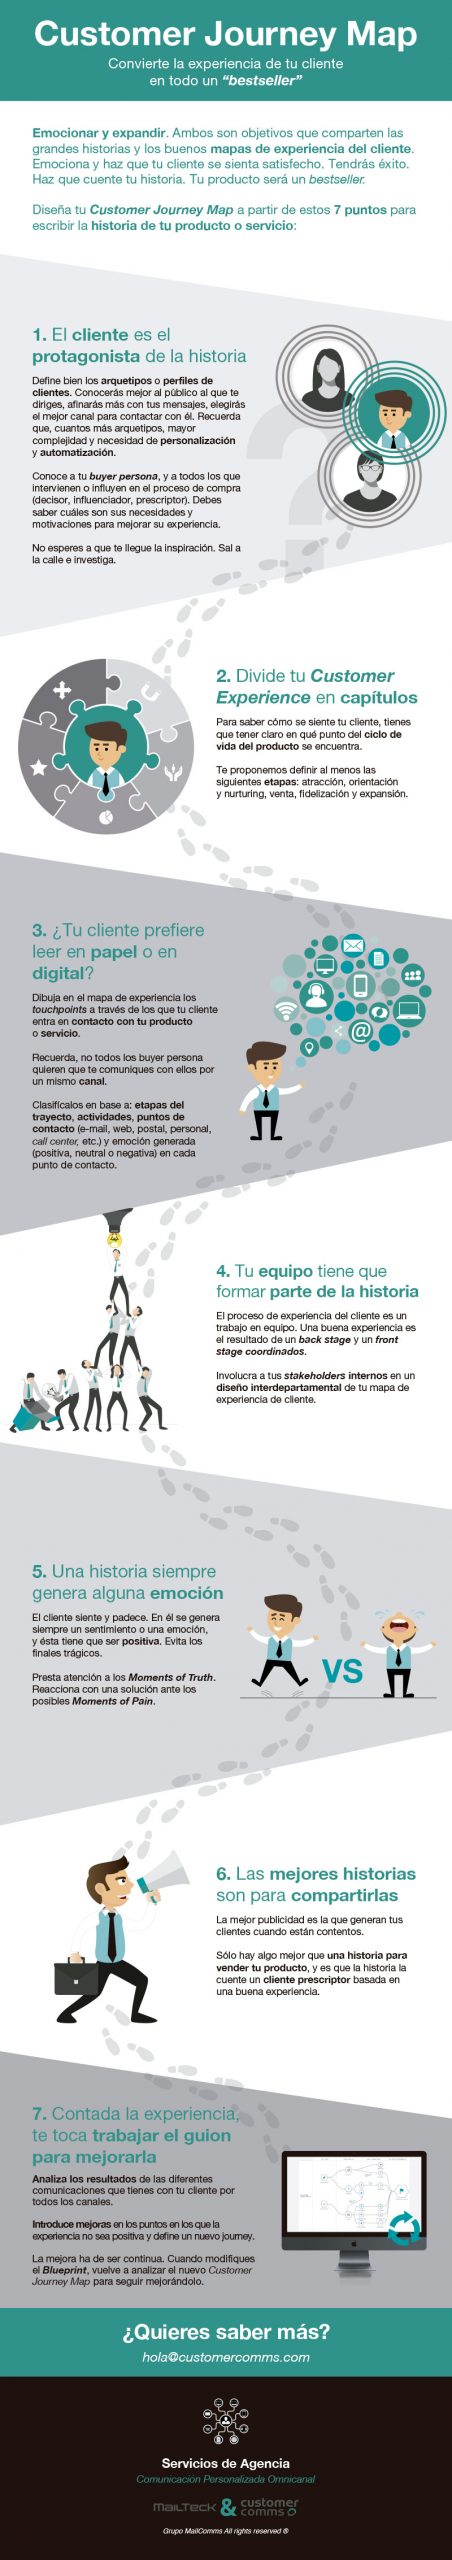 infografía para diseña tu Customer Journey Map